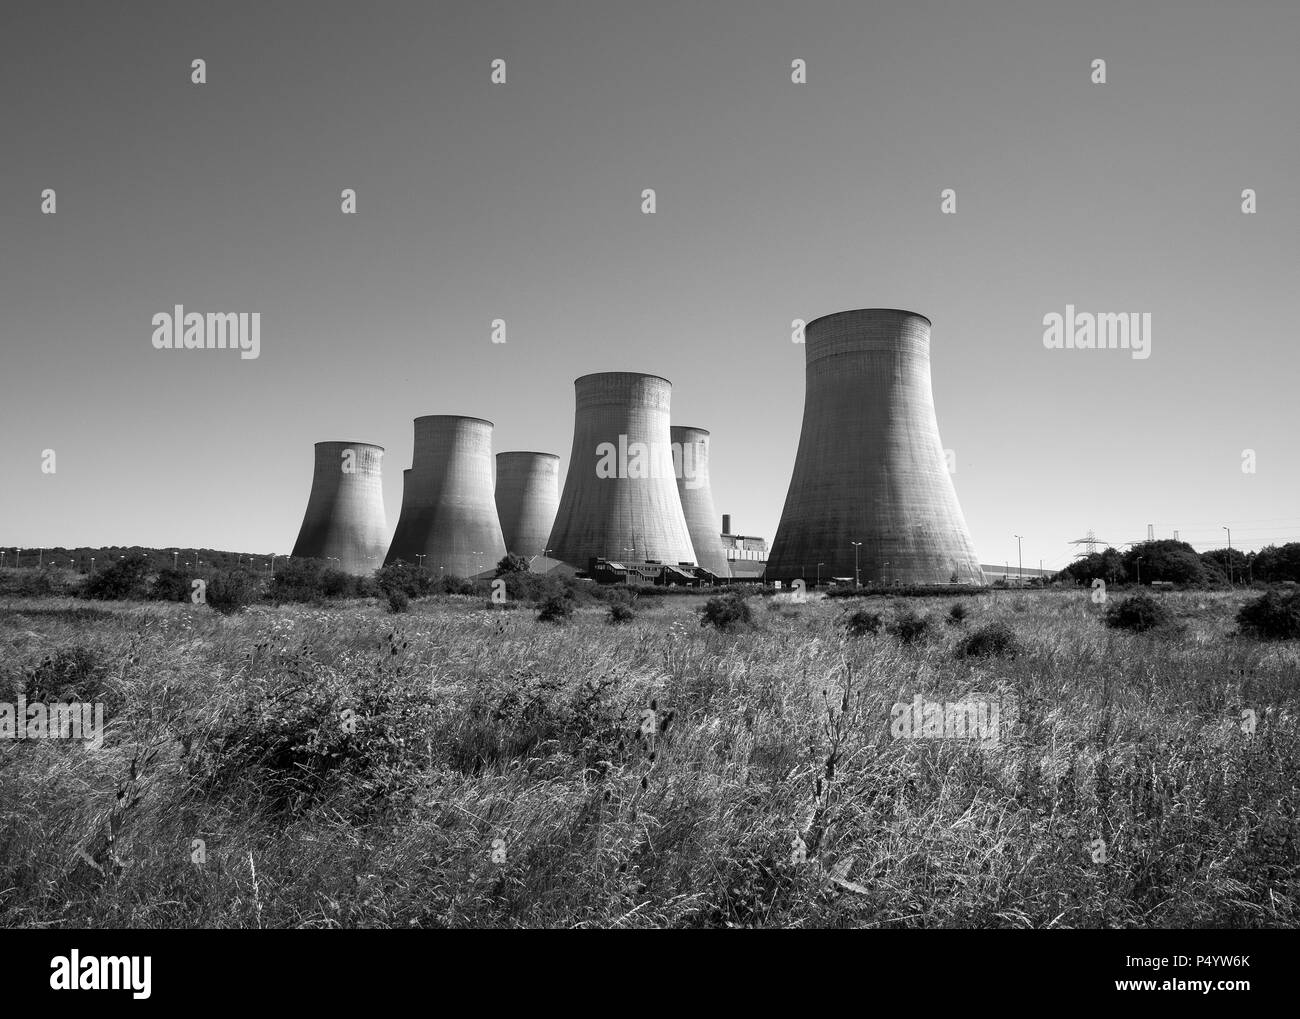 Ratcliffe on Soar power station - Stock Image